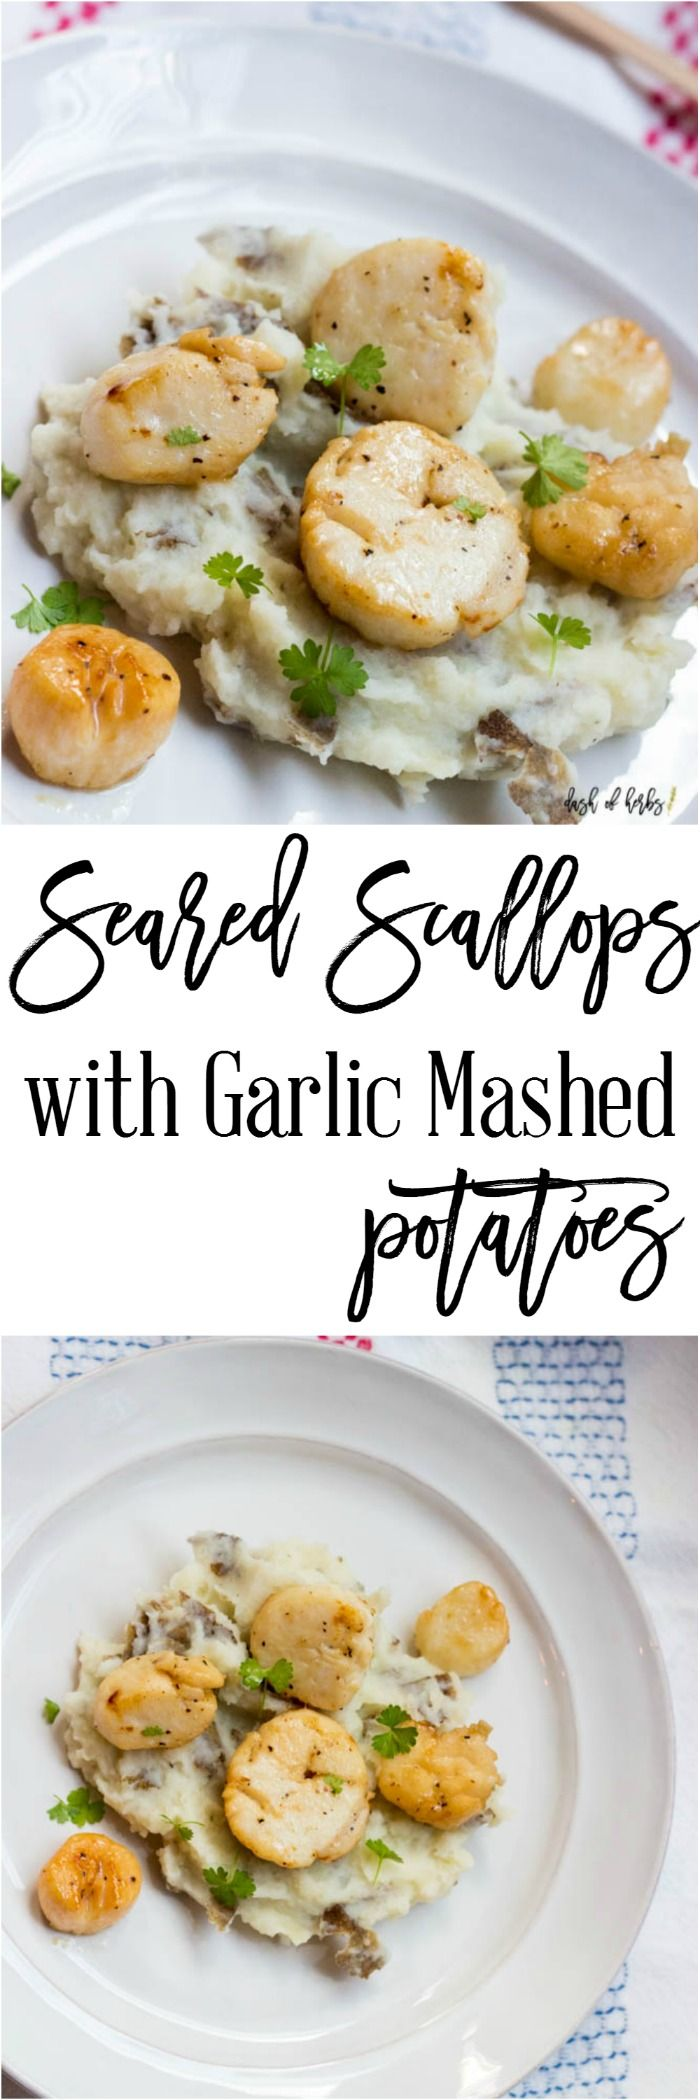 Seared Scallops with Garlic Mashed Potatoes - A delicious decadent recipe that is easy to make and only 9 SmartPoints per serving on Weight Watchers.  Seafood is delicious and healthy!